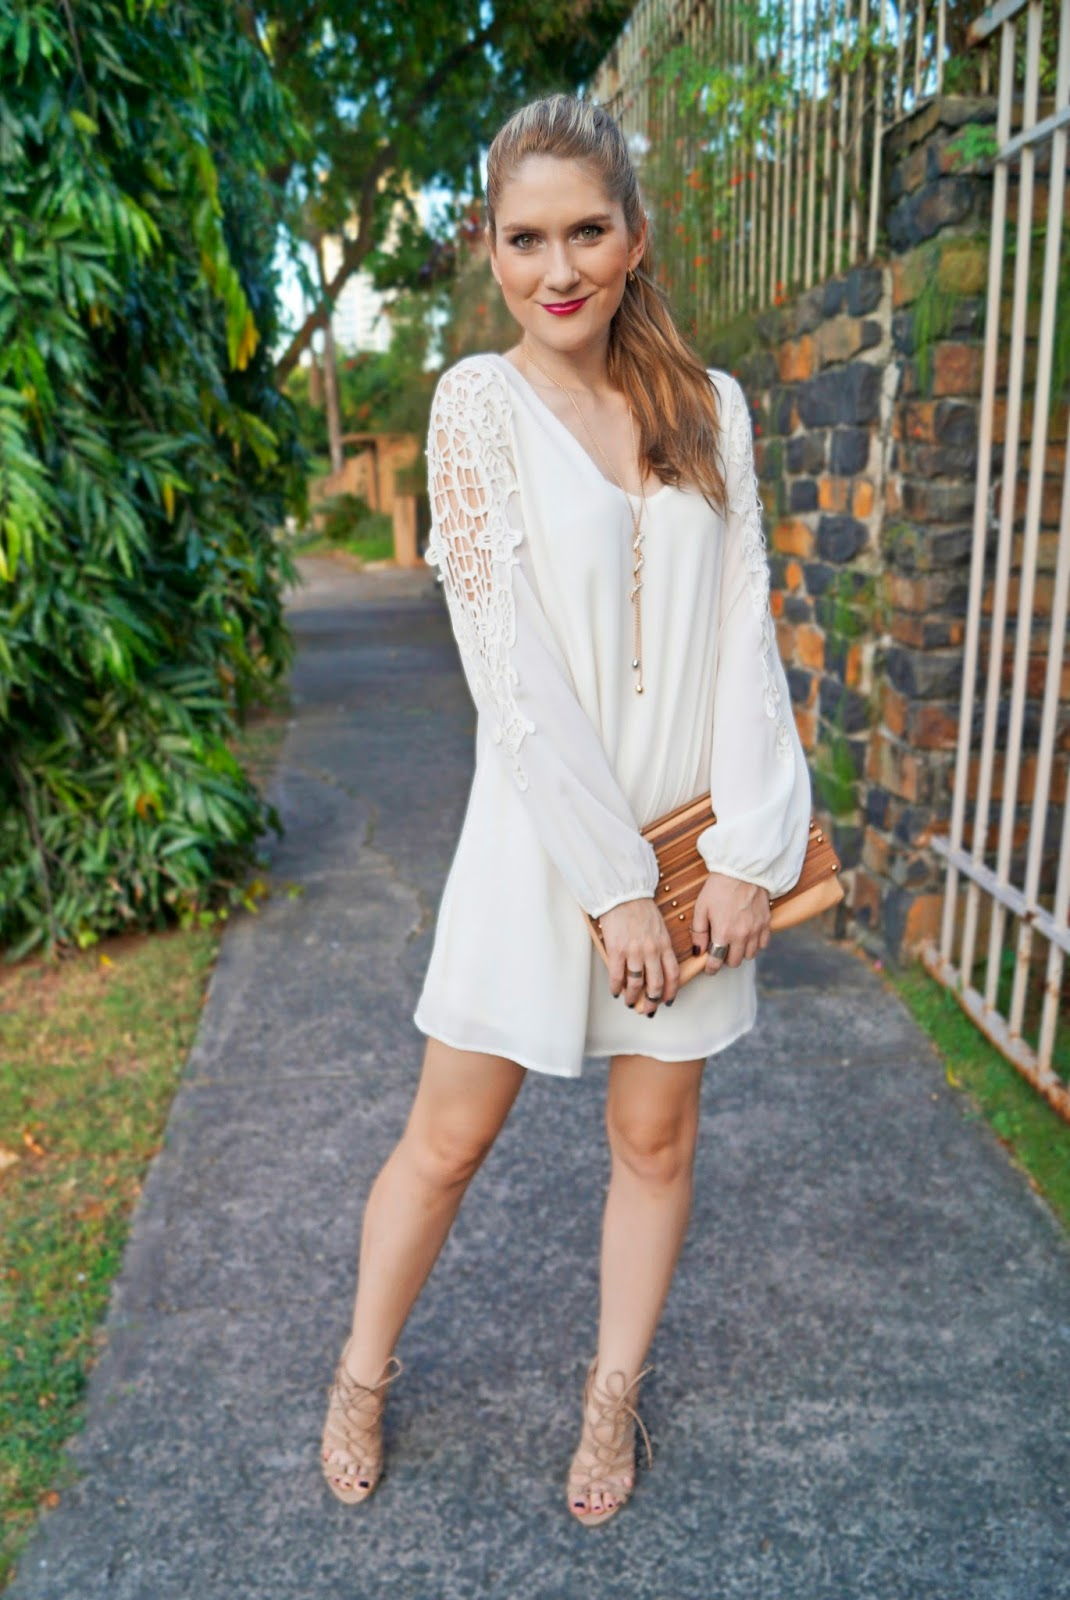 The Joy Of Fashion {Outfit} Loose And Comfy White Summer Dress